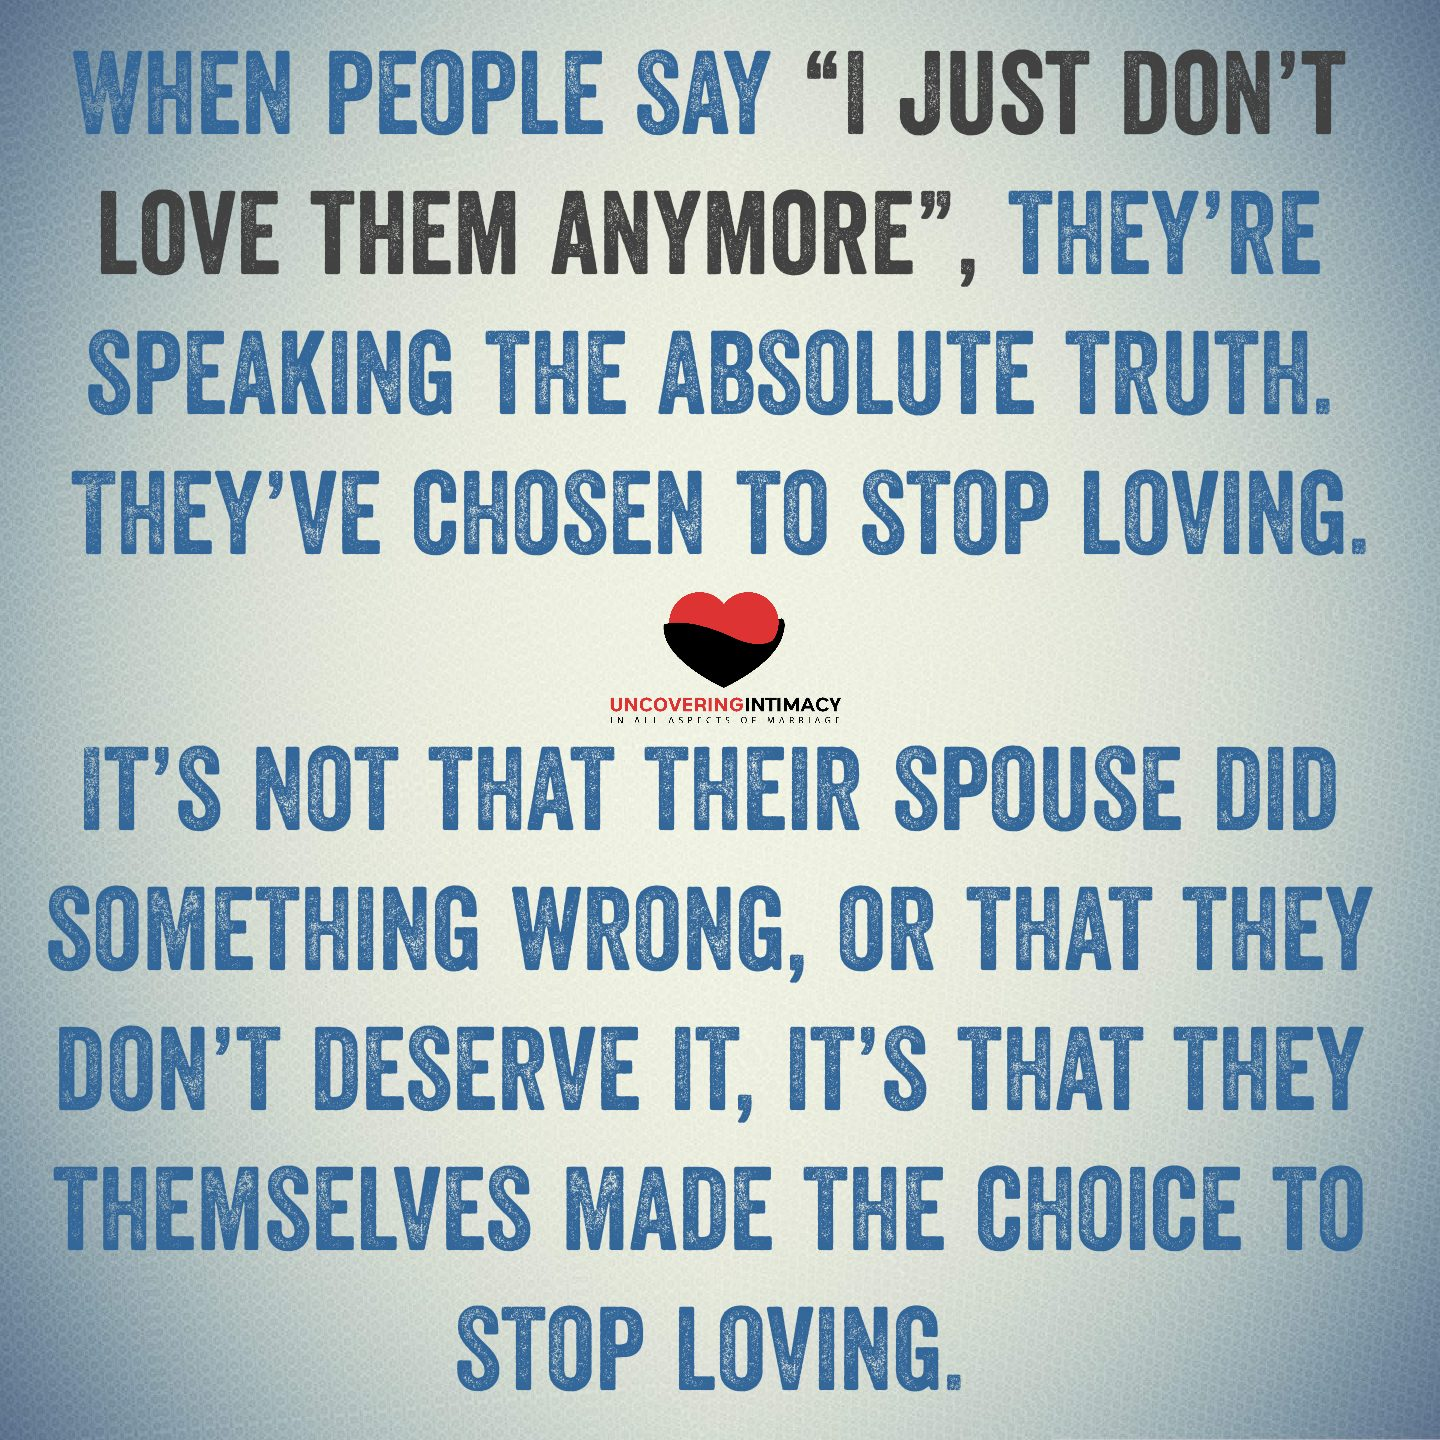 """I think when people say """"I just don't love them anymore"""", they're speaking the absolute truth. They've chosen to stop loving, and it's impossible to cherish someone you've chosen not to love. It's not that their spouse did something wrong, or that they don't deserve it, it's that they themselves made the choice to stop loving, stop cherishing. They've decided to distance themselves."""